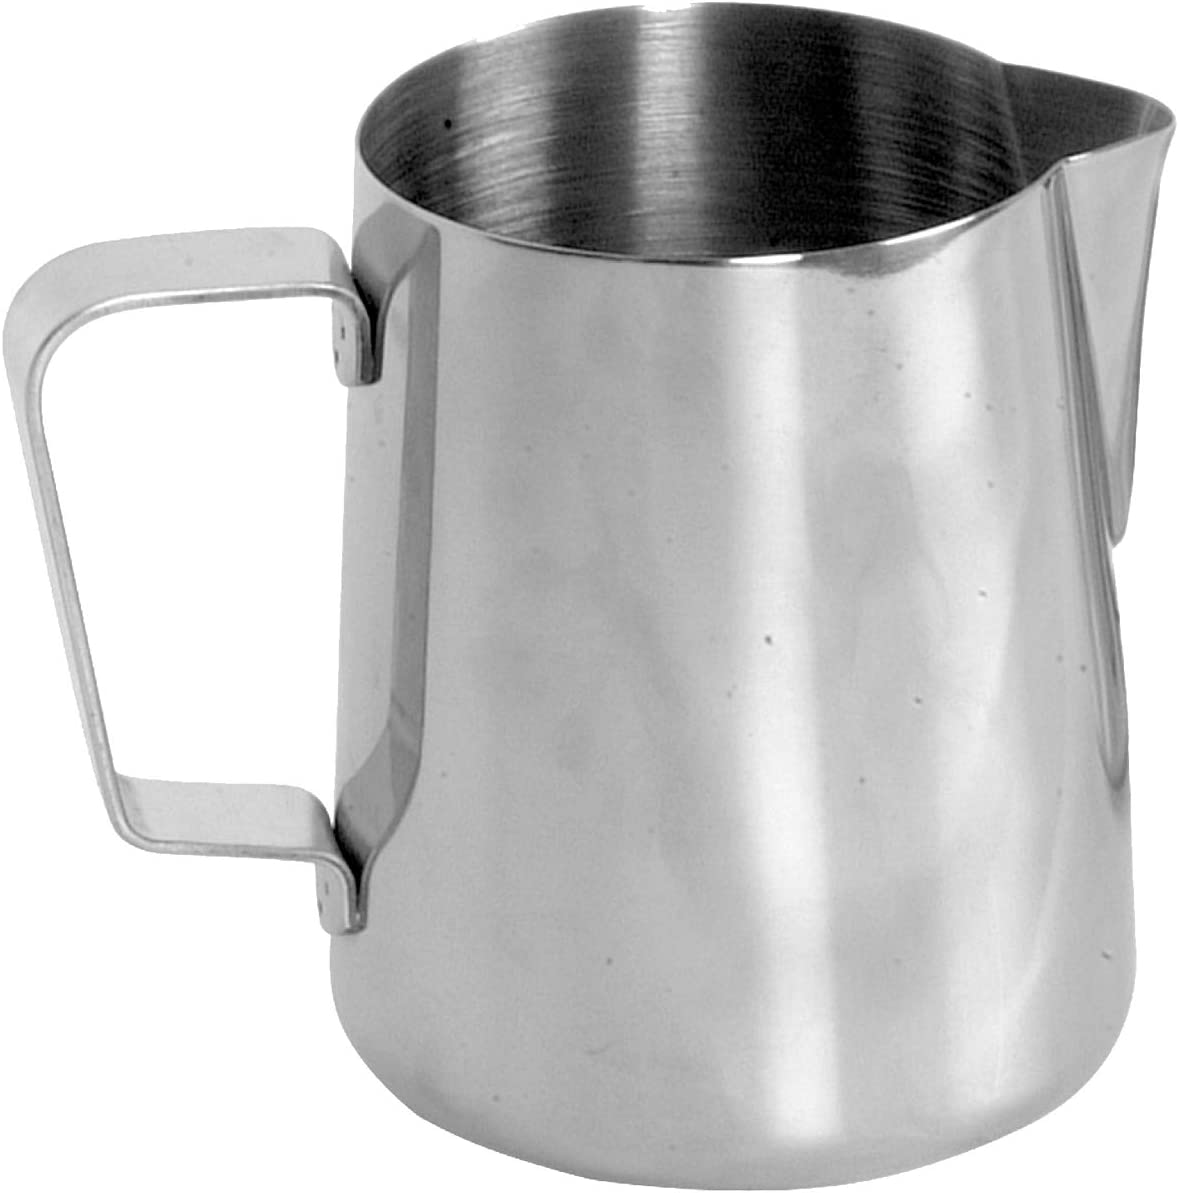 Thunder Group SLME012 Milk Pitcher without Ice Guard, 12-Ounce